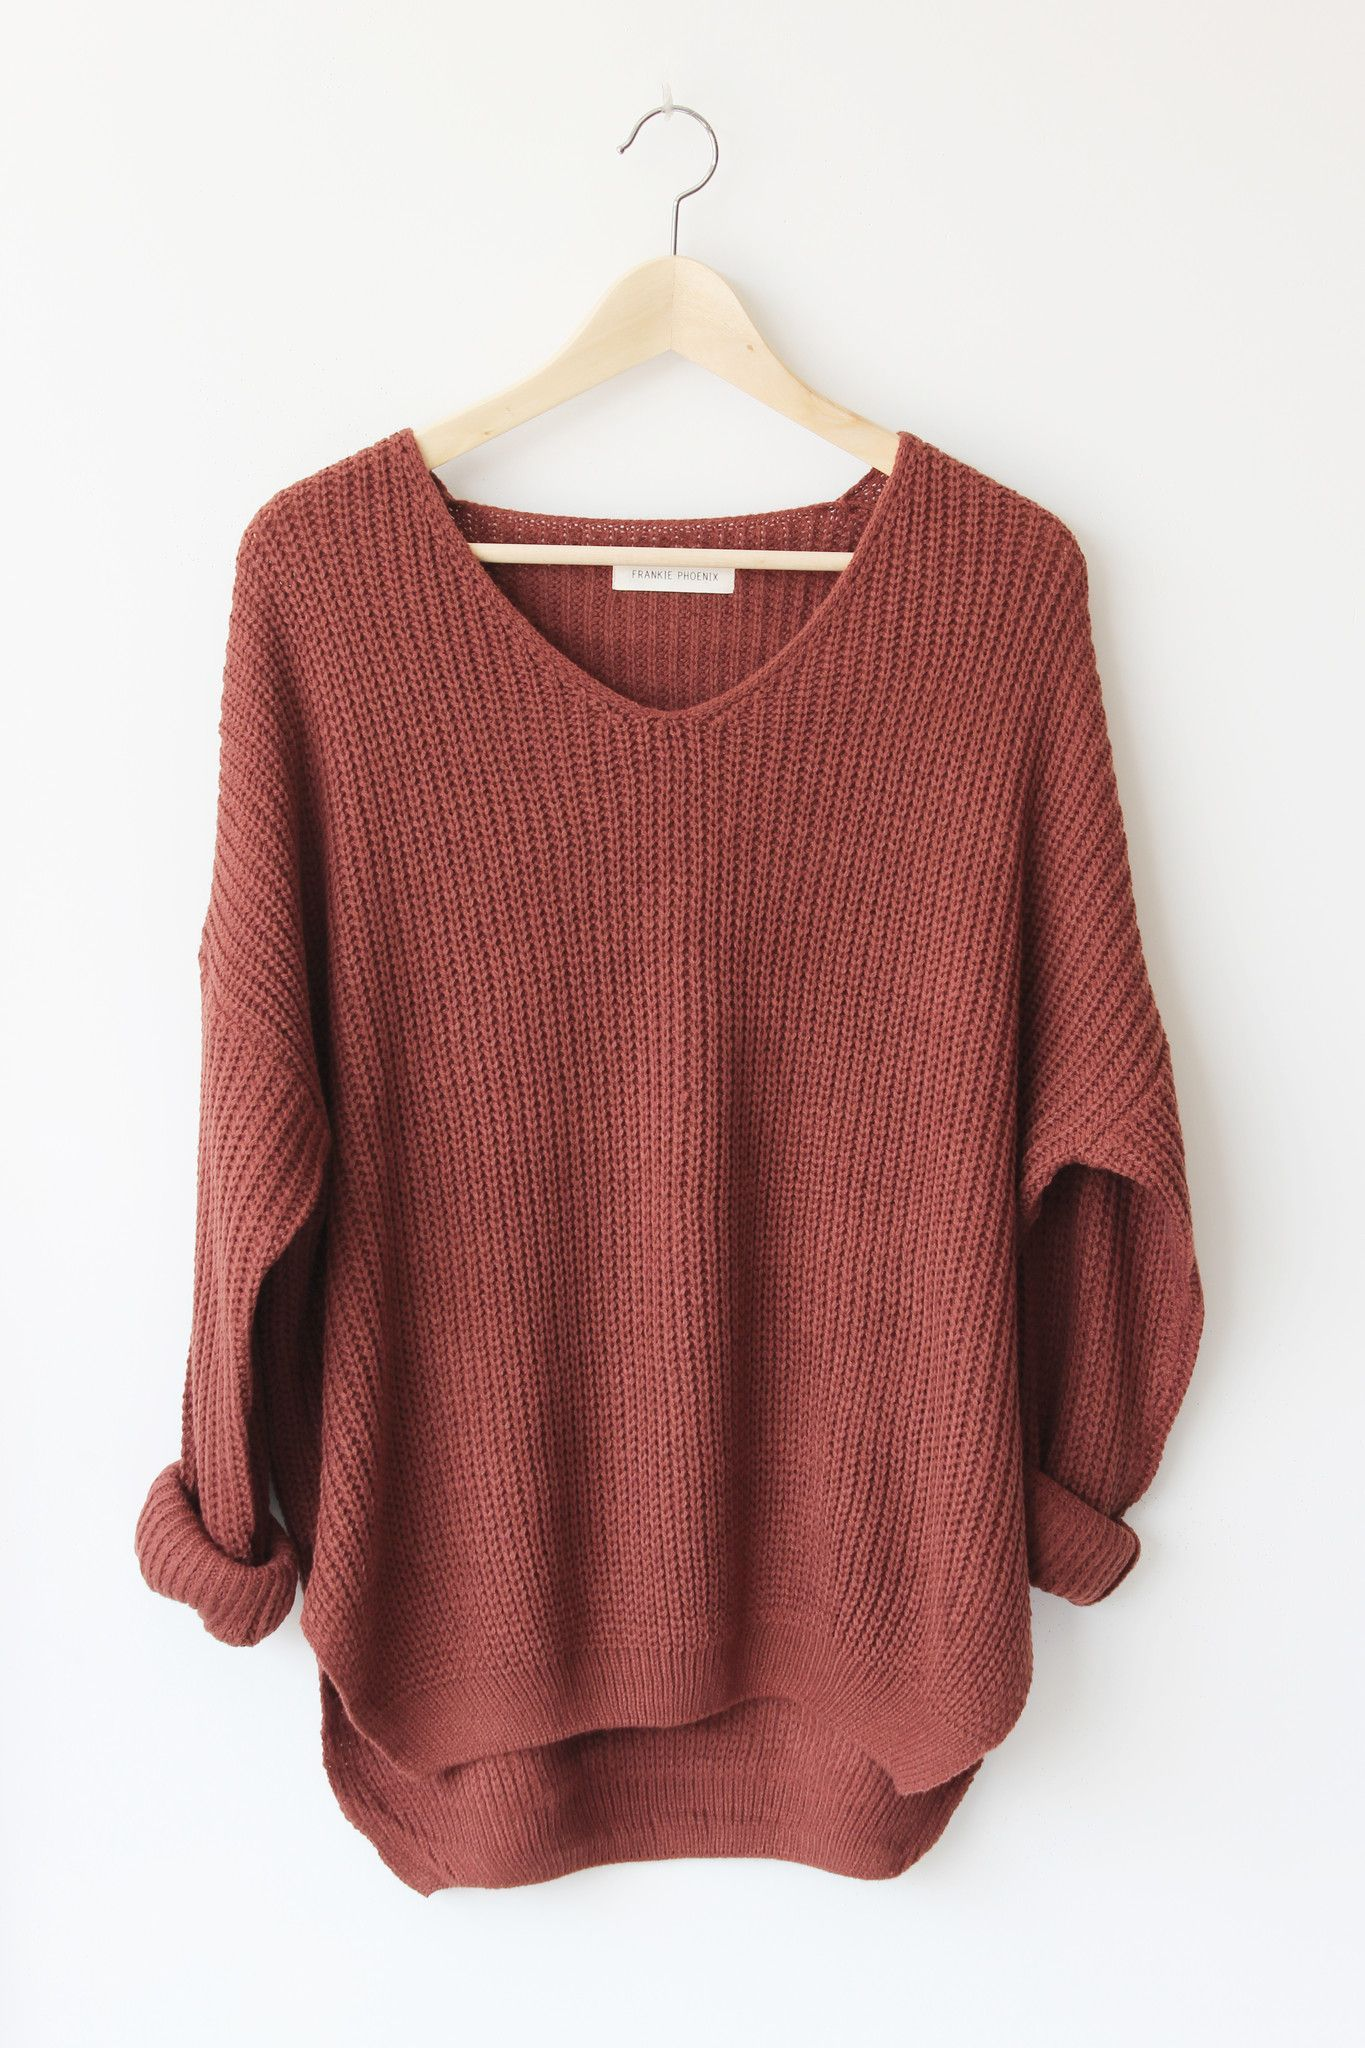 7d960a4935 Josephine Knit Sweater